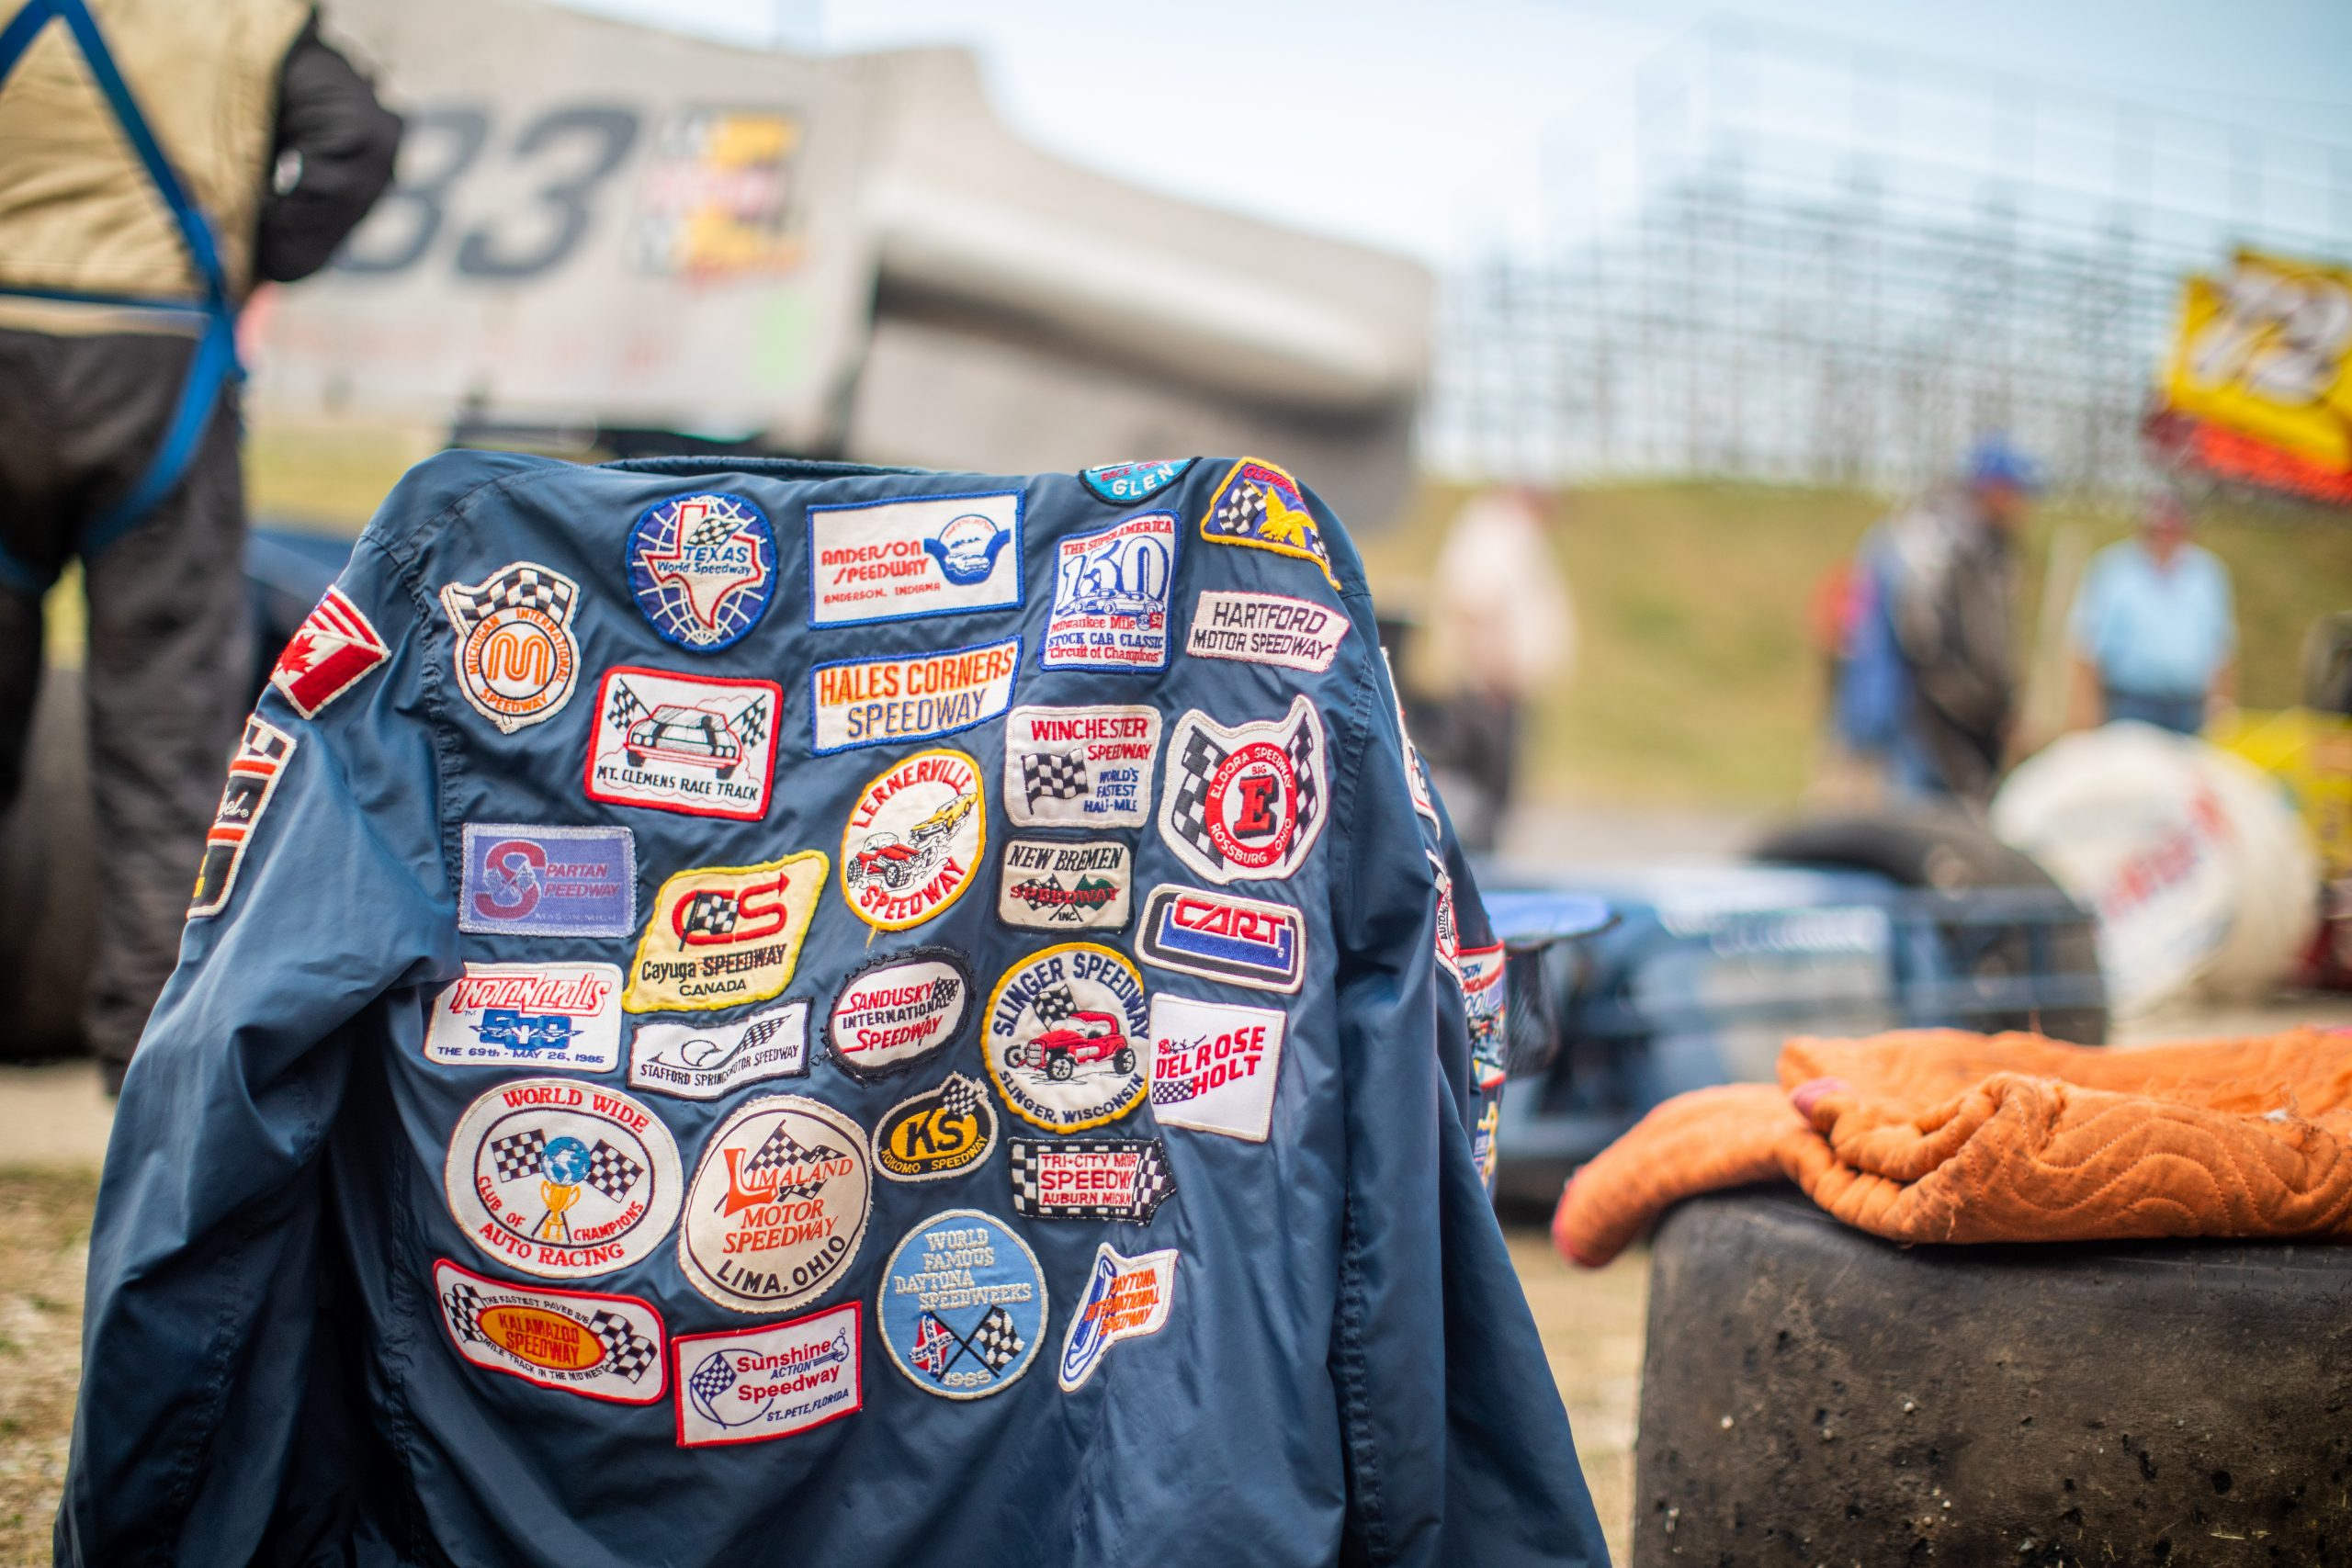 racing patches on jacket